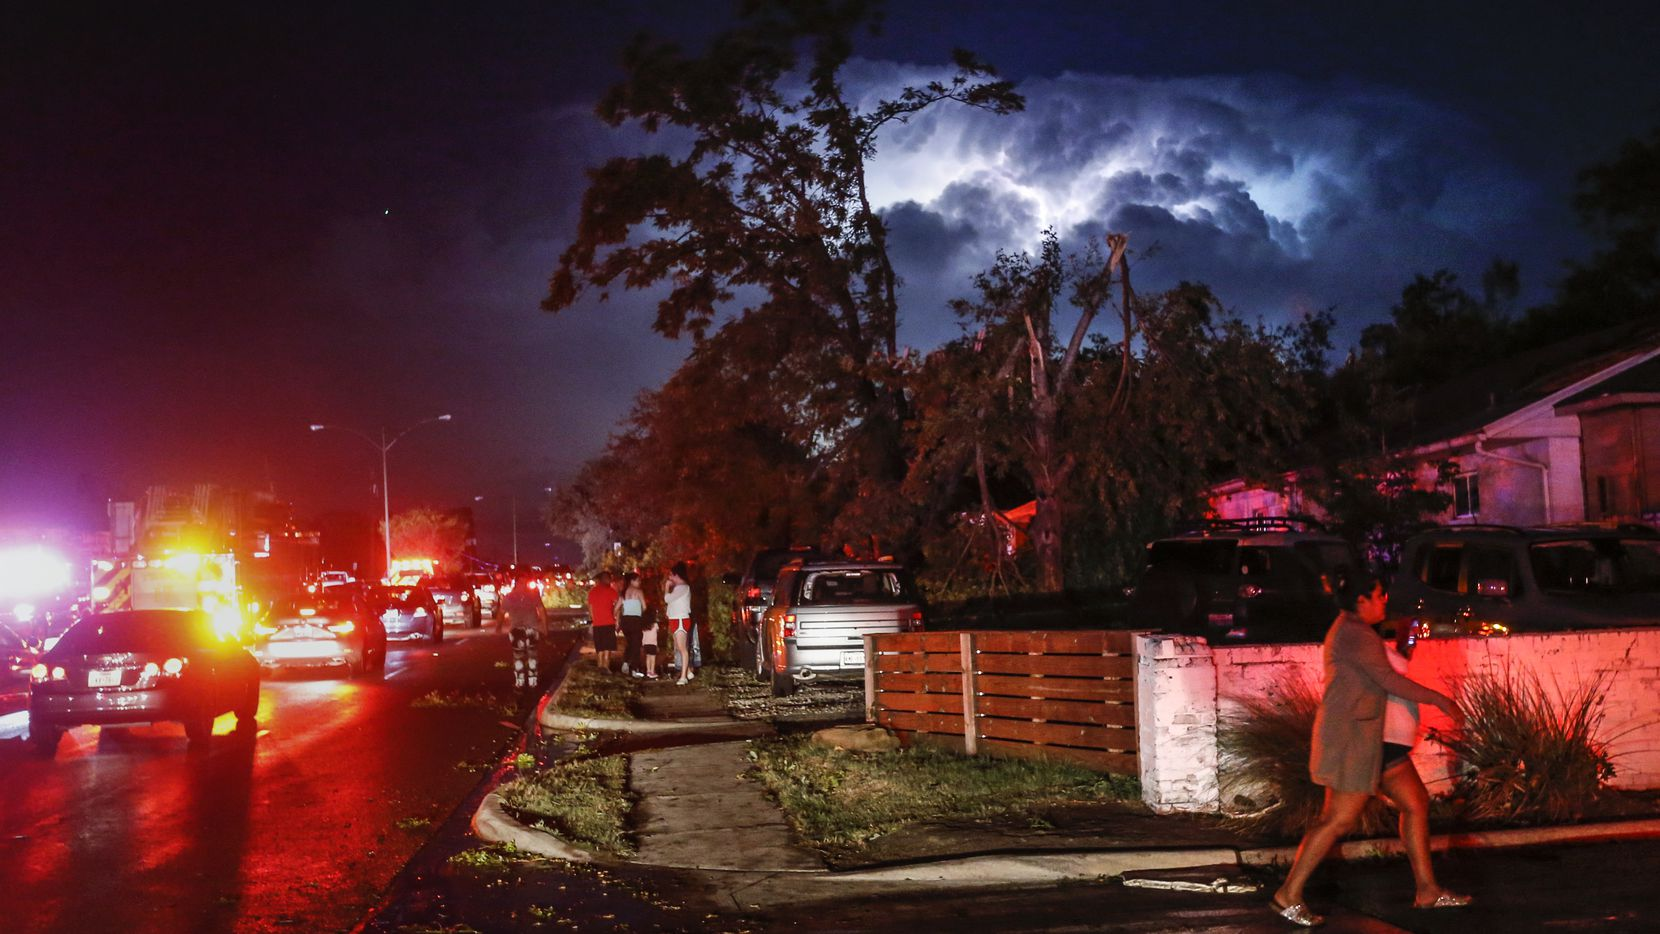 Lightning and emergency lights highlight damage as people gather in the parking lot of a shopping complex near the intersection of Walnut Hill Lane and Marsh Lane in Dallas where a tornado hit Sunday, Oct. 20, 2019.